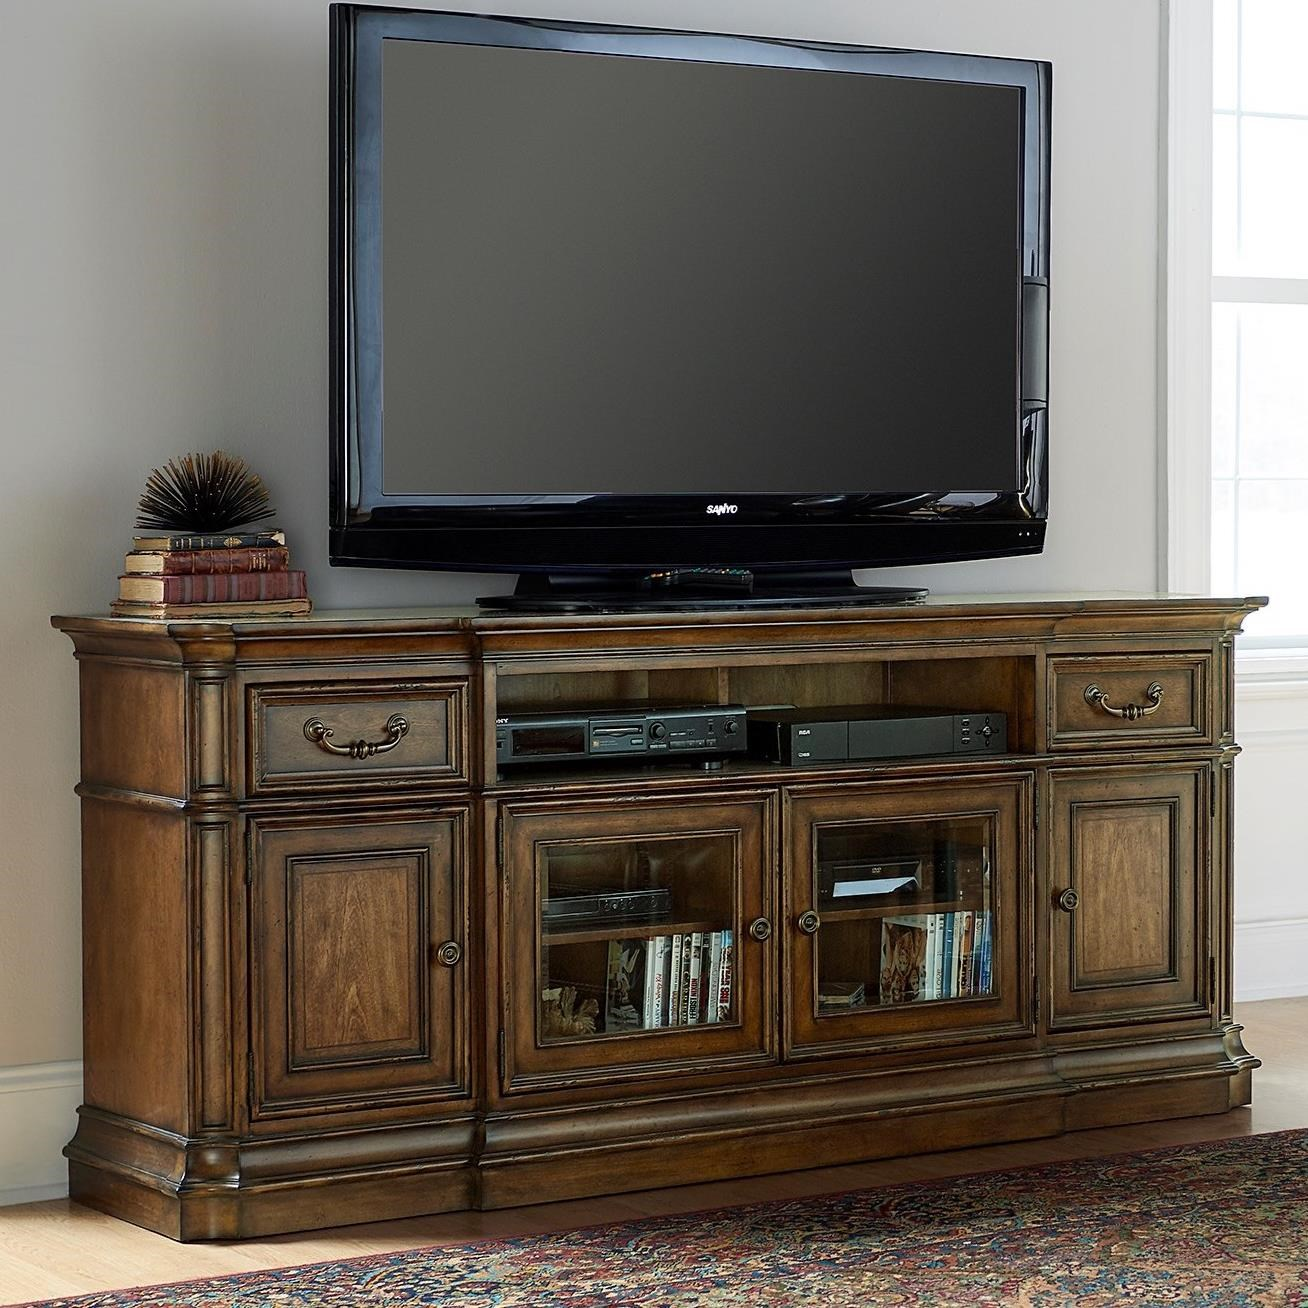 Liberty Furniture Amelia Entertainment Entertainment TV Stand - Item Number: 487-TV73